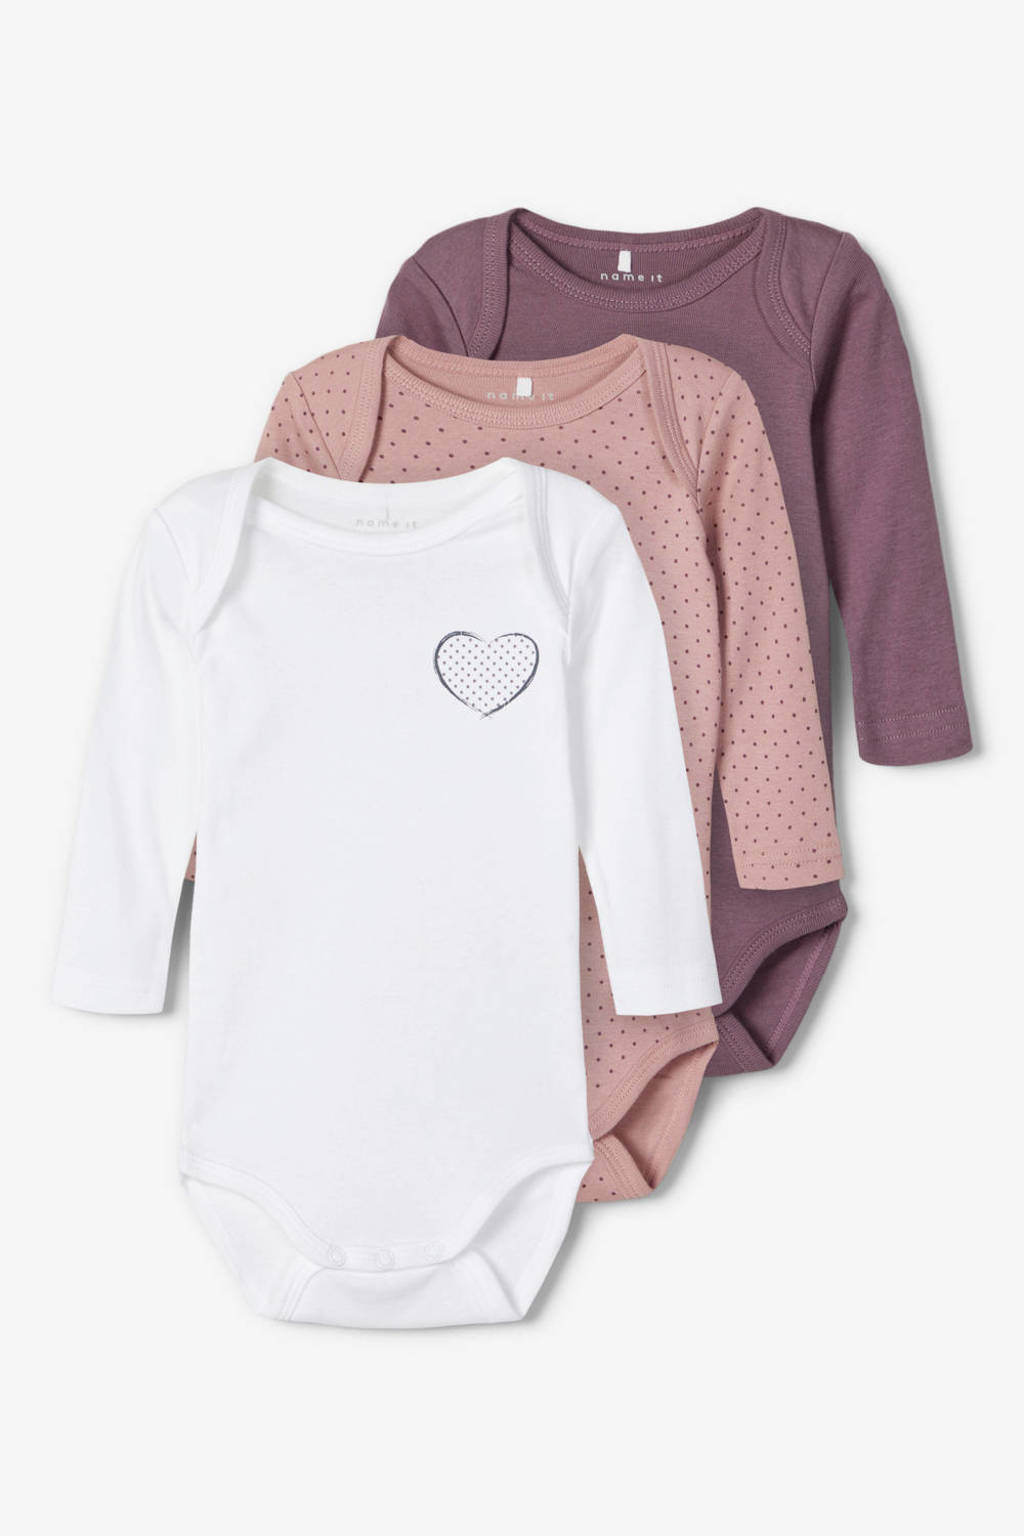 NAME IT BABY romper - set van 3 paars/oudroze/wit, Paars/oudroze/wit